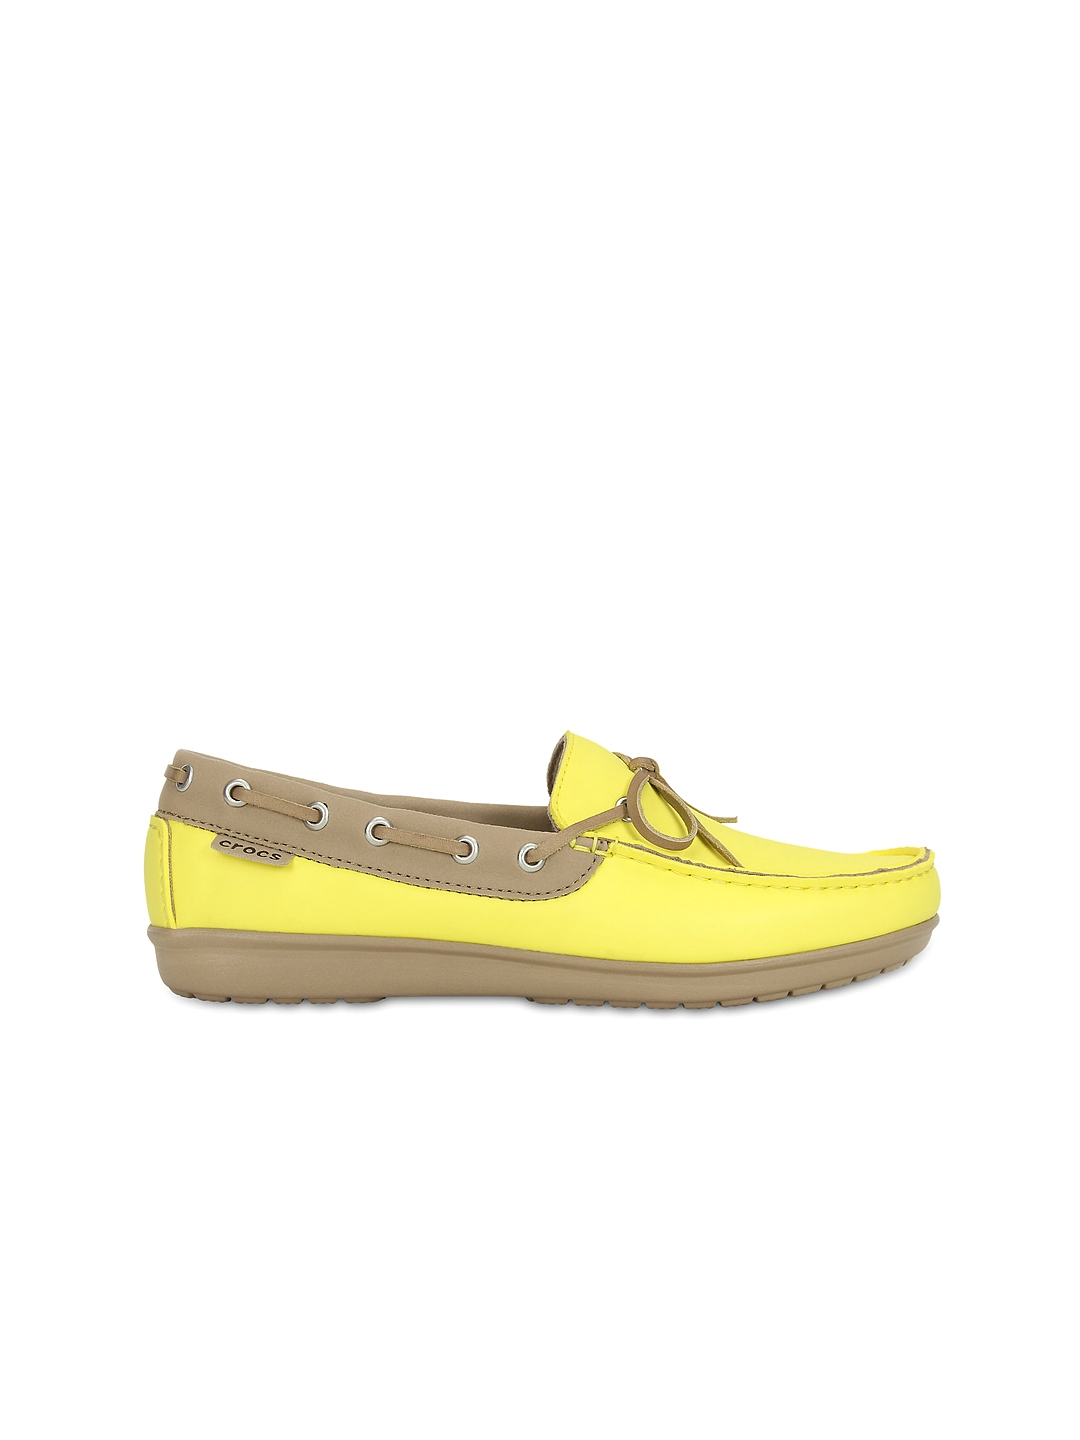 2bc83dba1 Buy Crocs Women Yellow Handcrafted Boat Shoes - Casual Shoes for ...